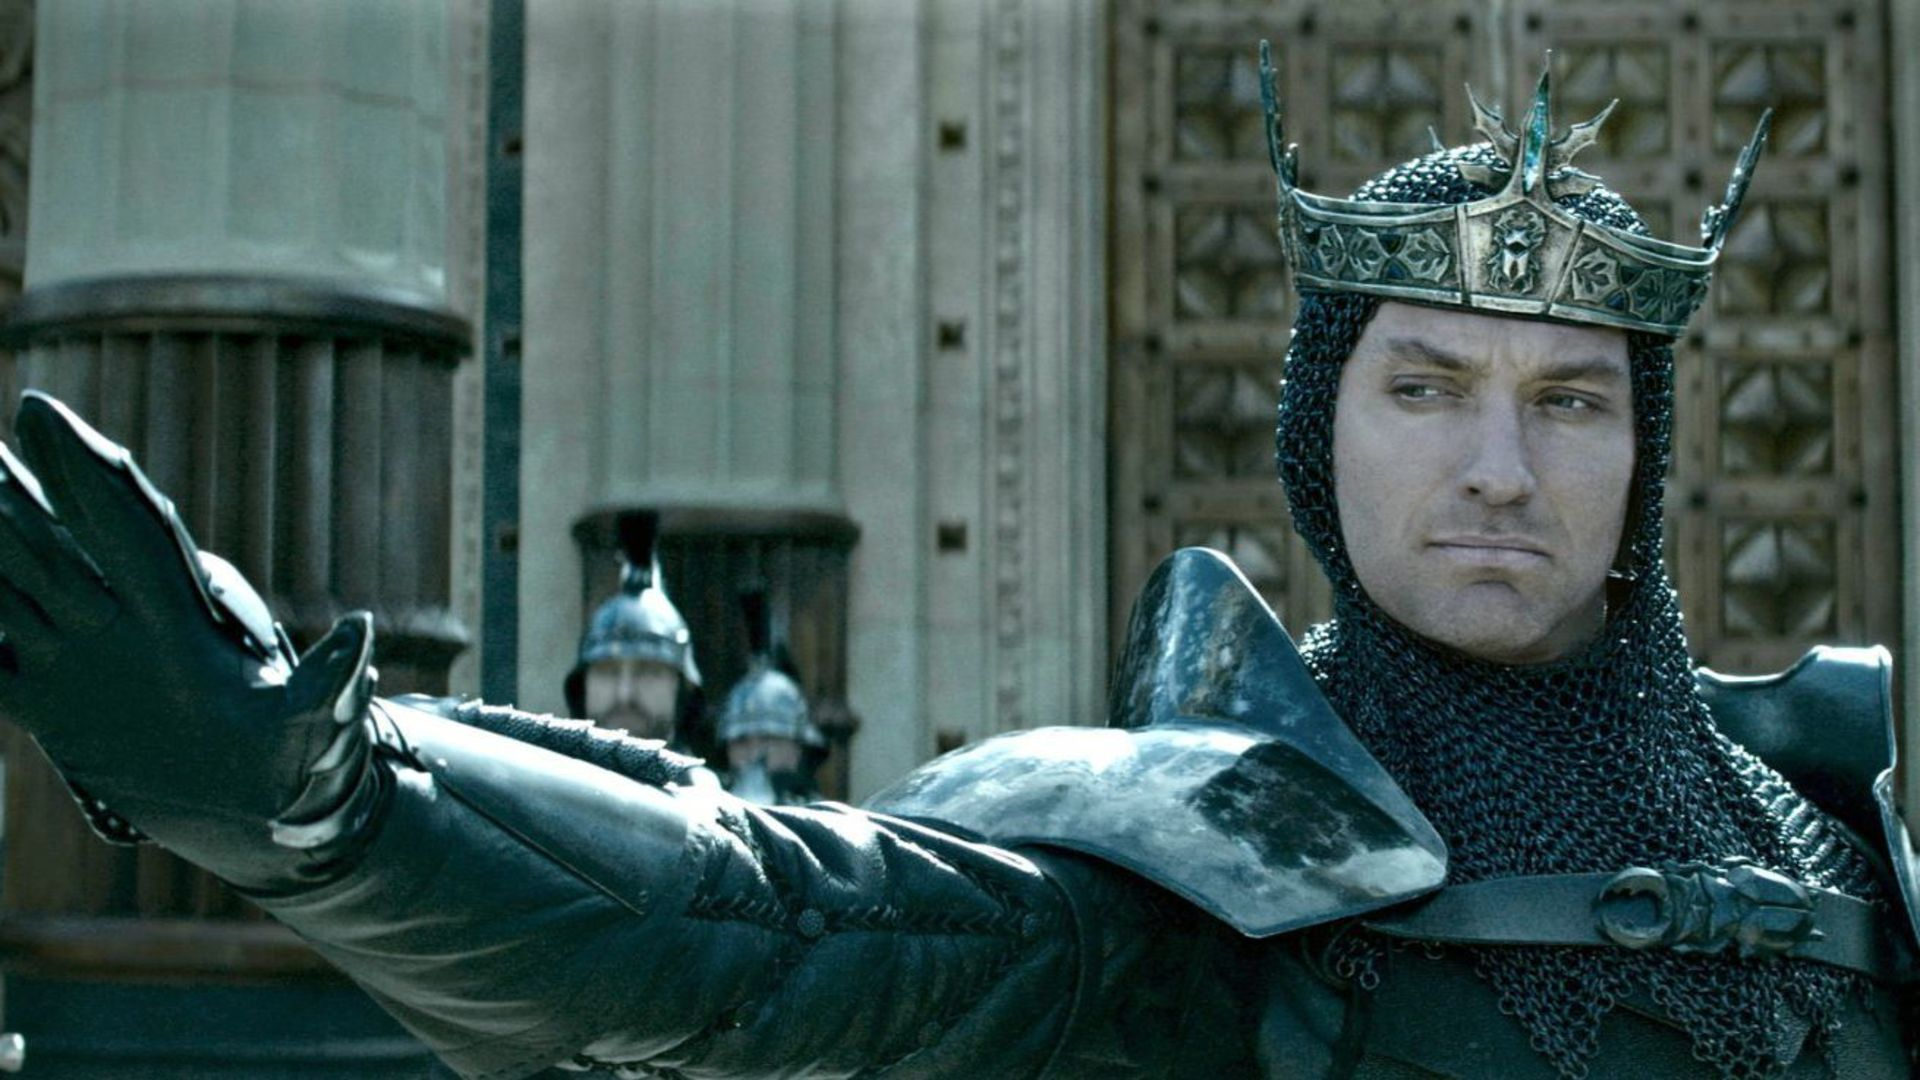 Download king arthur legend of the sword free movie full online streaming hd watch now